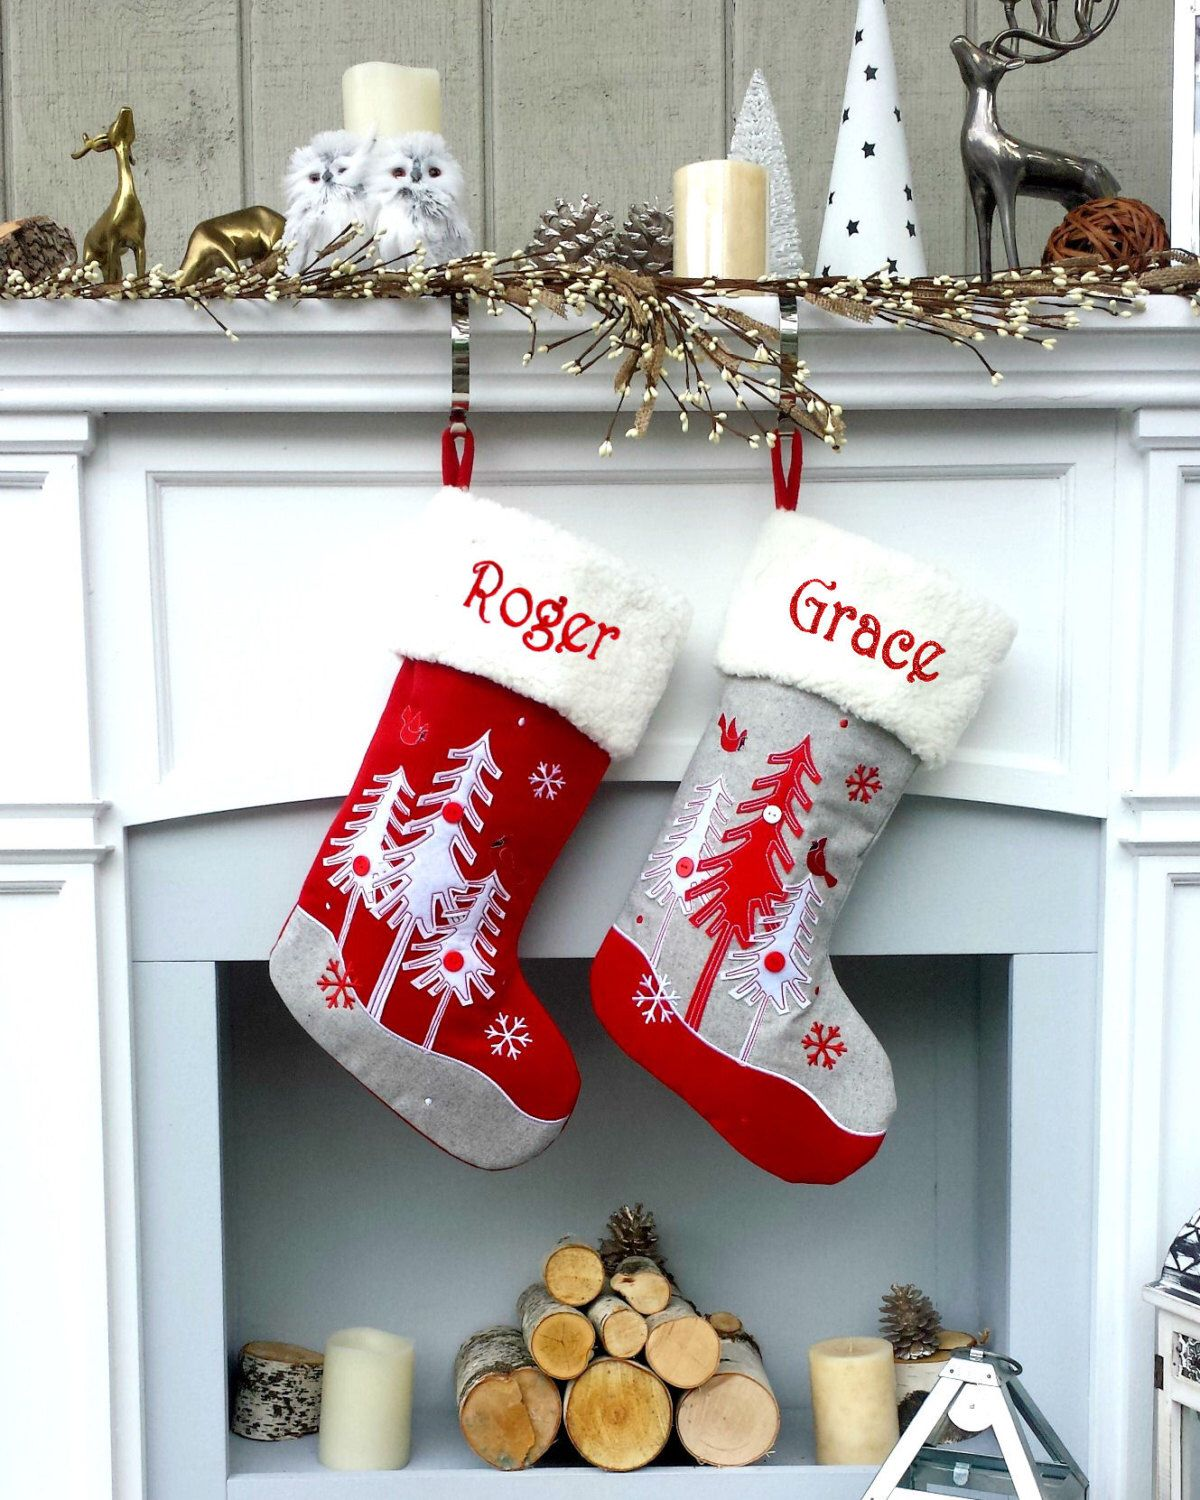 Whimsical Nordic Wool Felt Stocking With Scandinavian Forest Trees Personalized Monogra Christmas Stockings Christmas Stockings Diy White Christmas Stockings